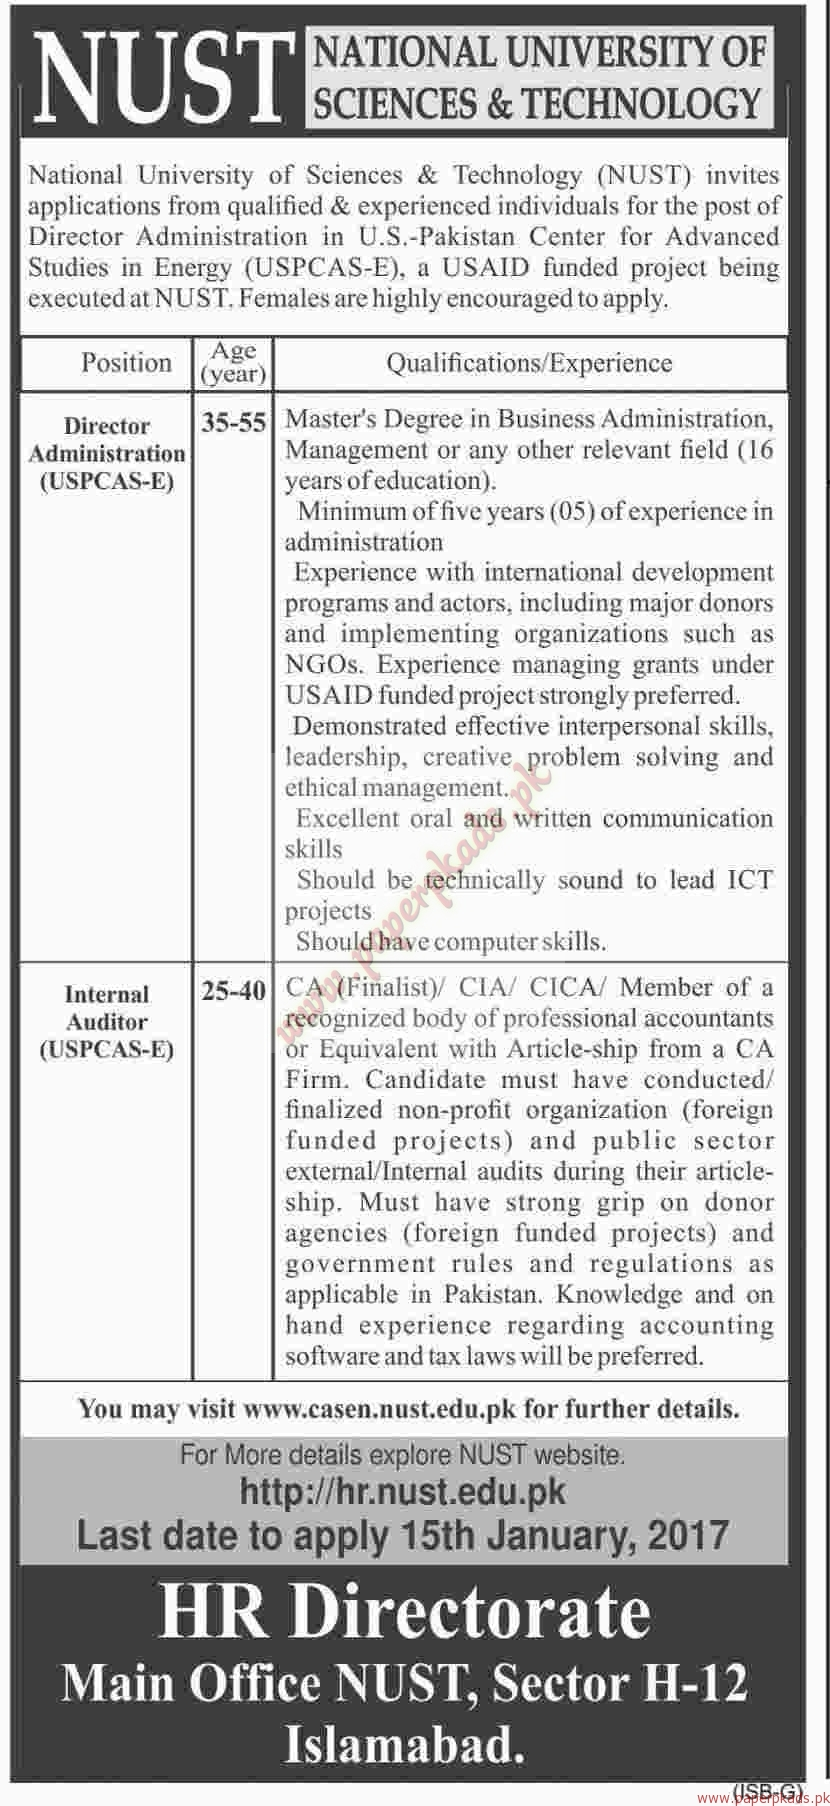 National University of Sciences and Technology Jobs - Dawn Jobs ads 04 January 2017